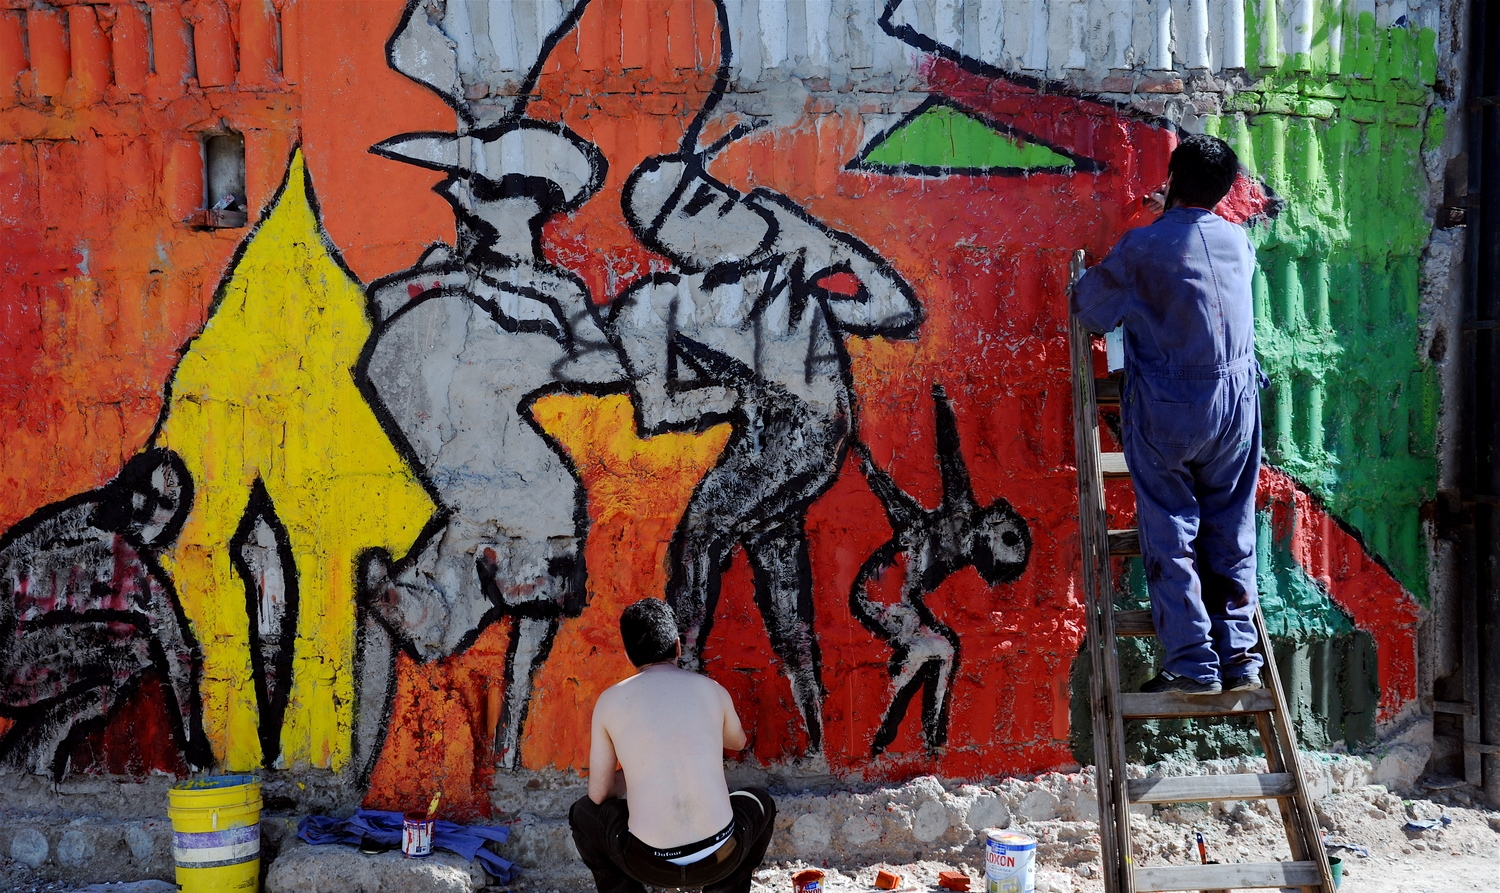 Painting a Mural in Barrio 21.24